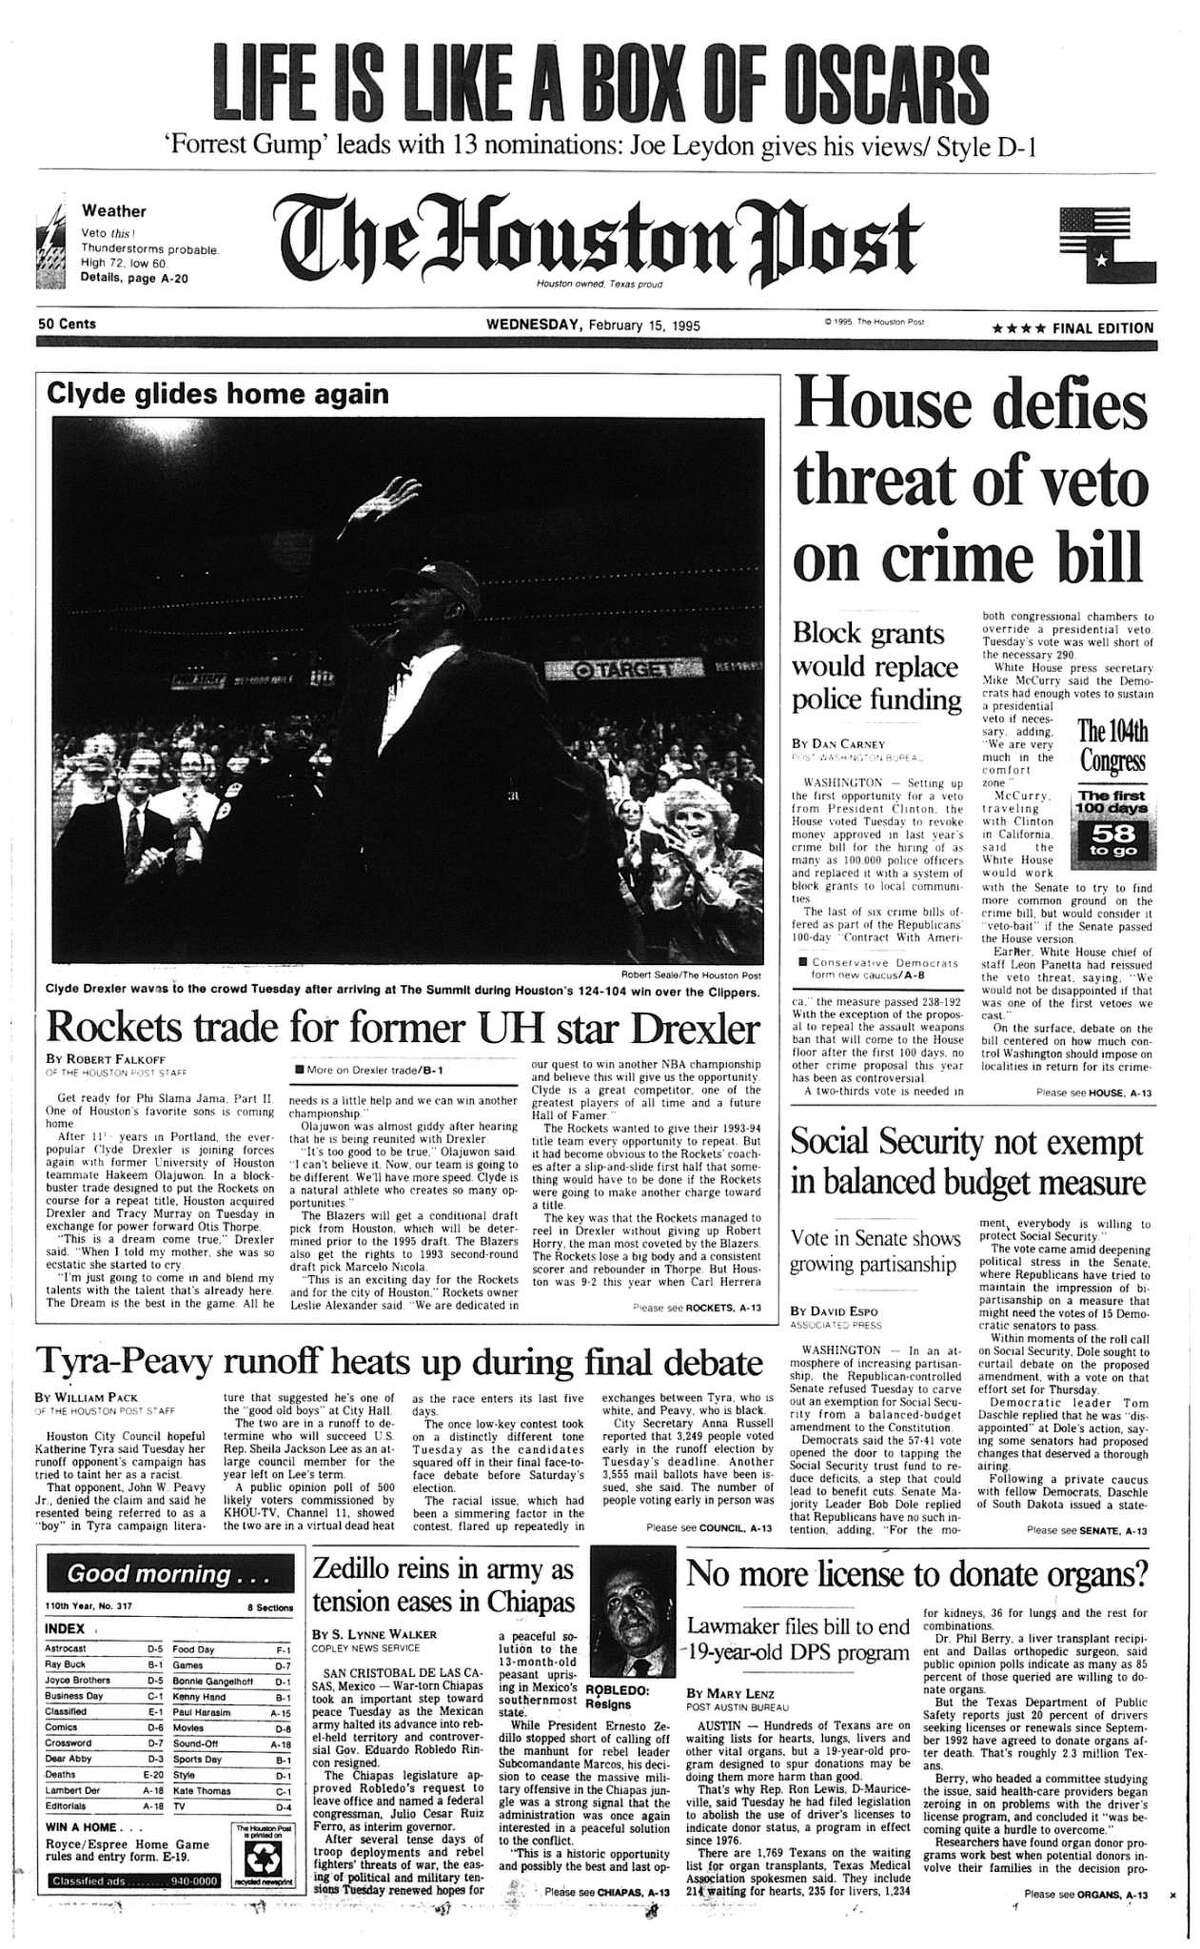 Houston Post front page - February 15, 1995 - section A, page 1. Clyde glides home again. Rockets trade for former UH star Drexler.